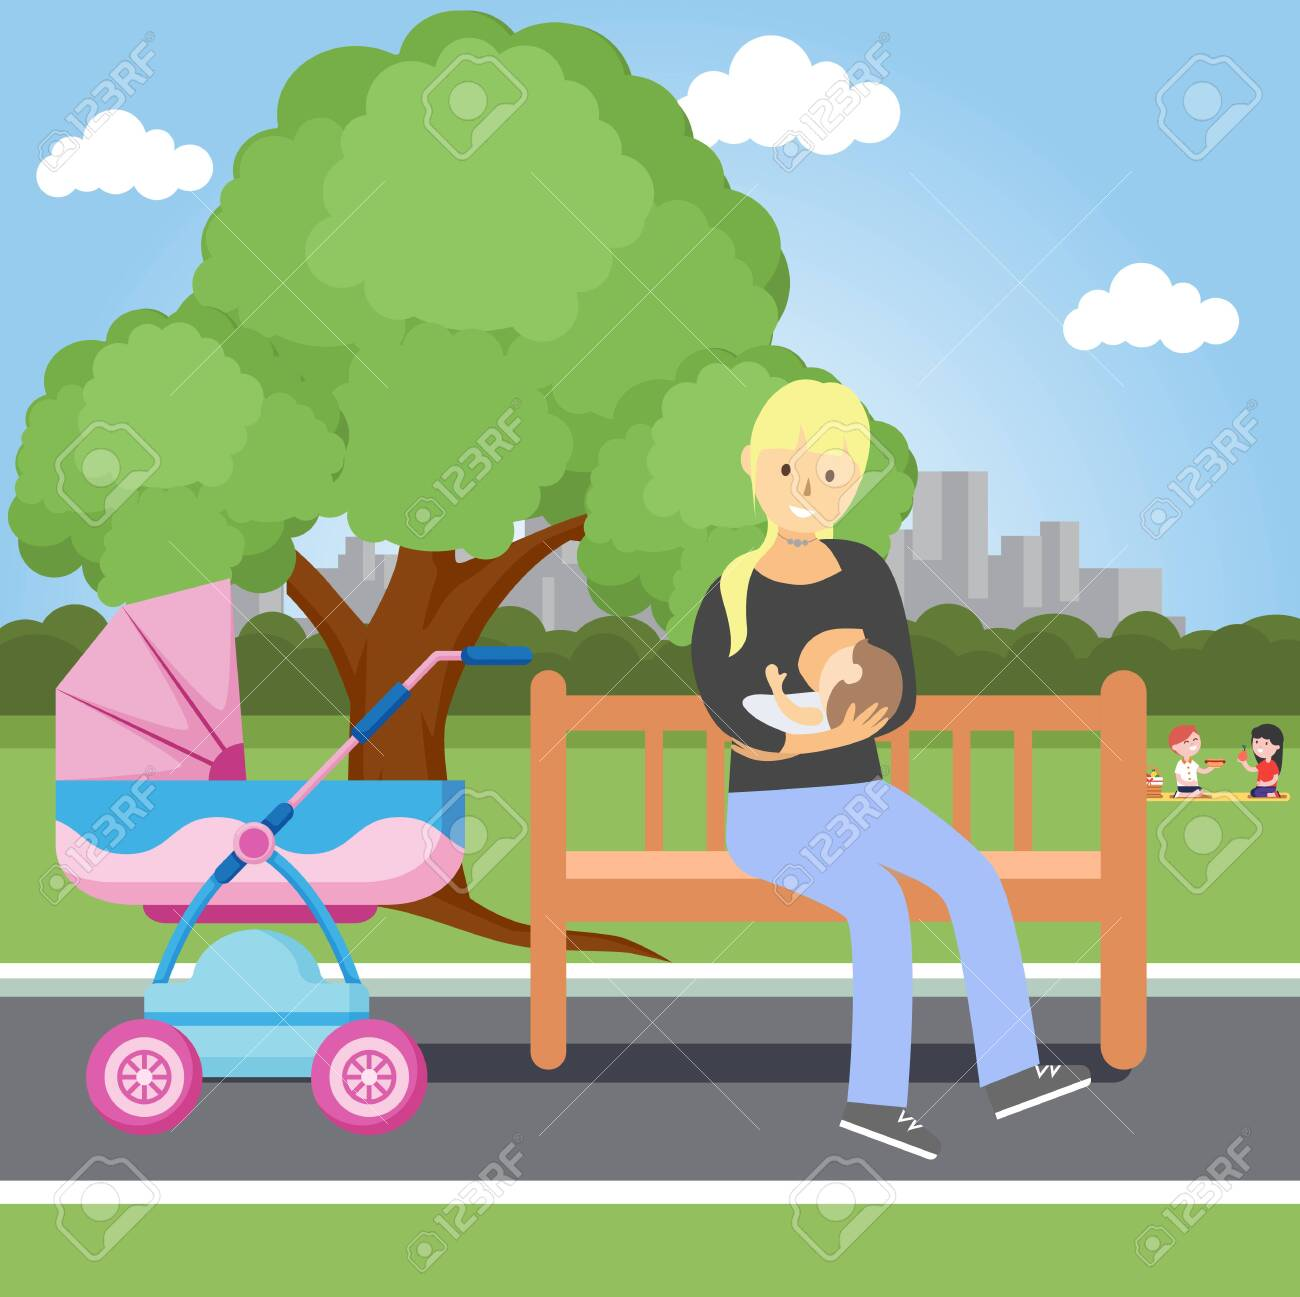 Breastfeeding of a child in a public place. Freedom of women's right to breastfeeding. Vector illustration - 146135640